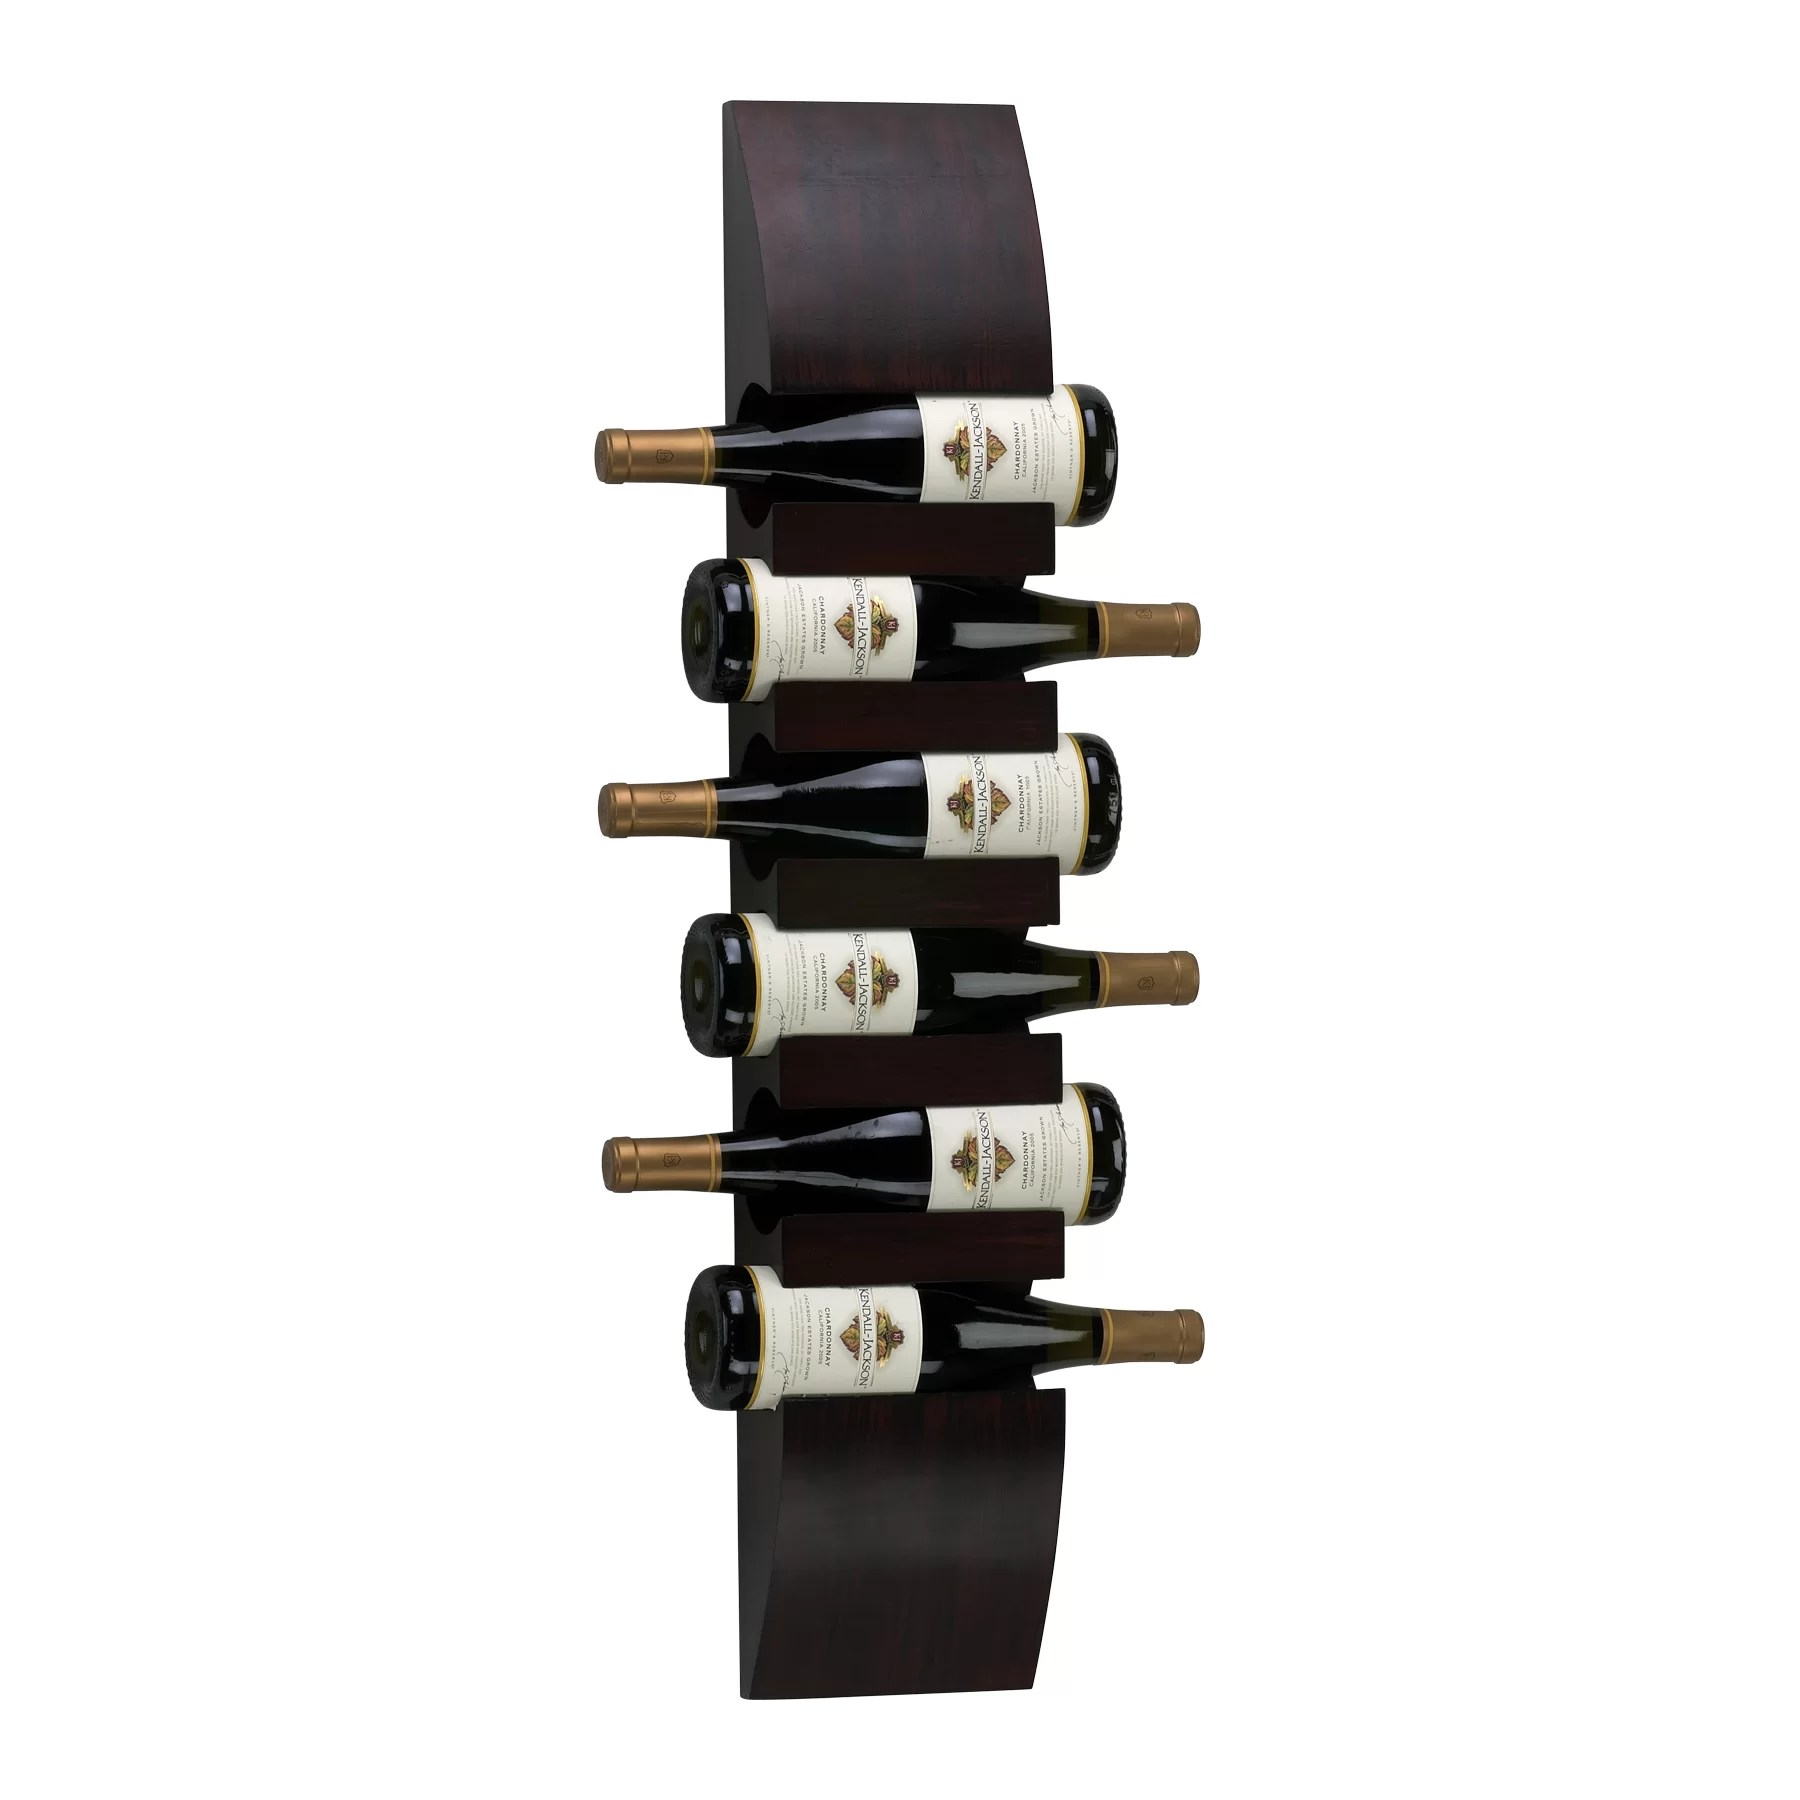 6 Bottle Wine Rack Wall Mount Cyan Design 6 Bottle Wall Mounted Wine Rack And Reviews